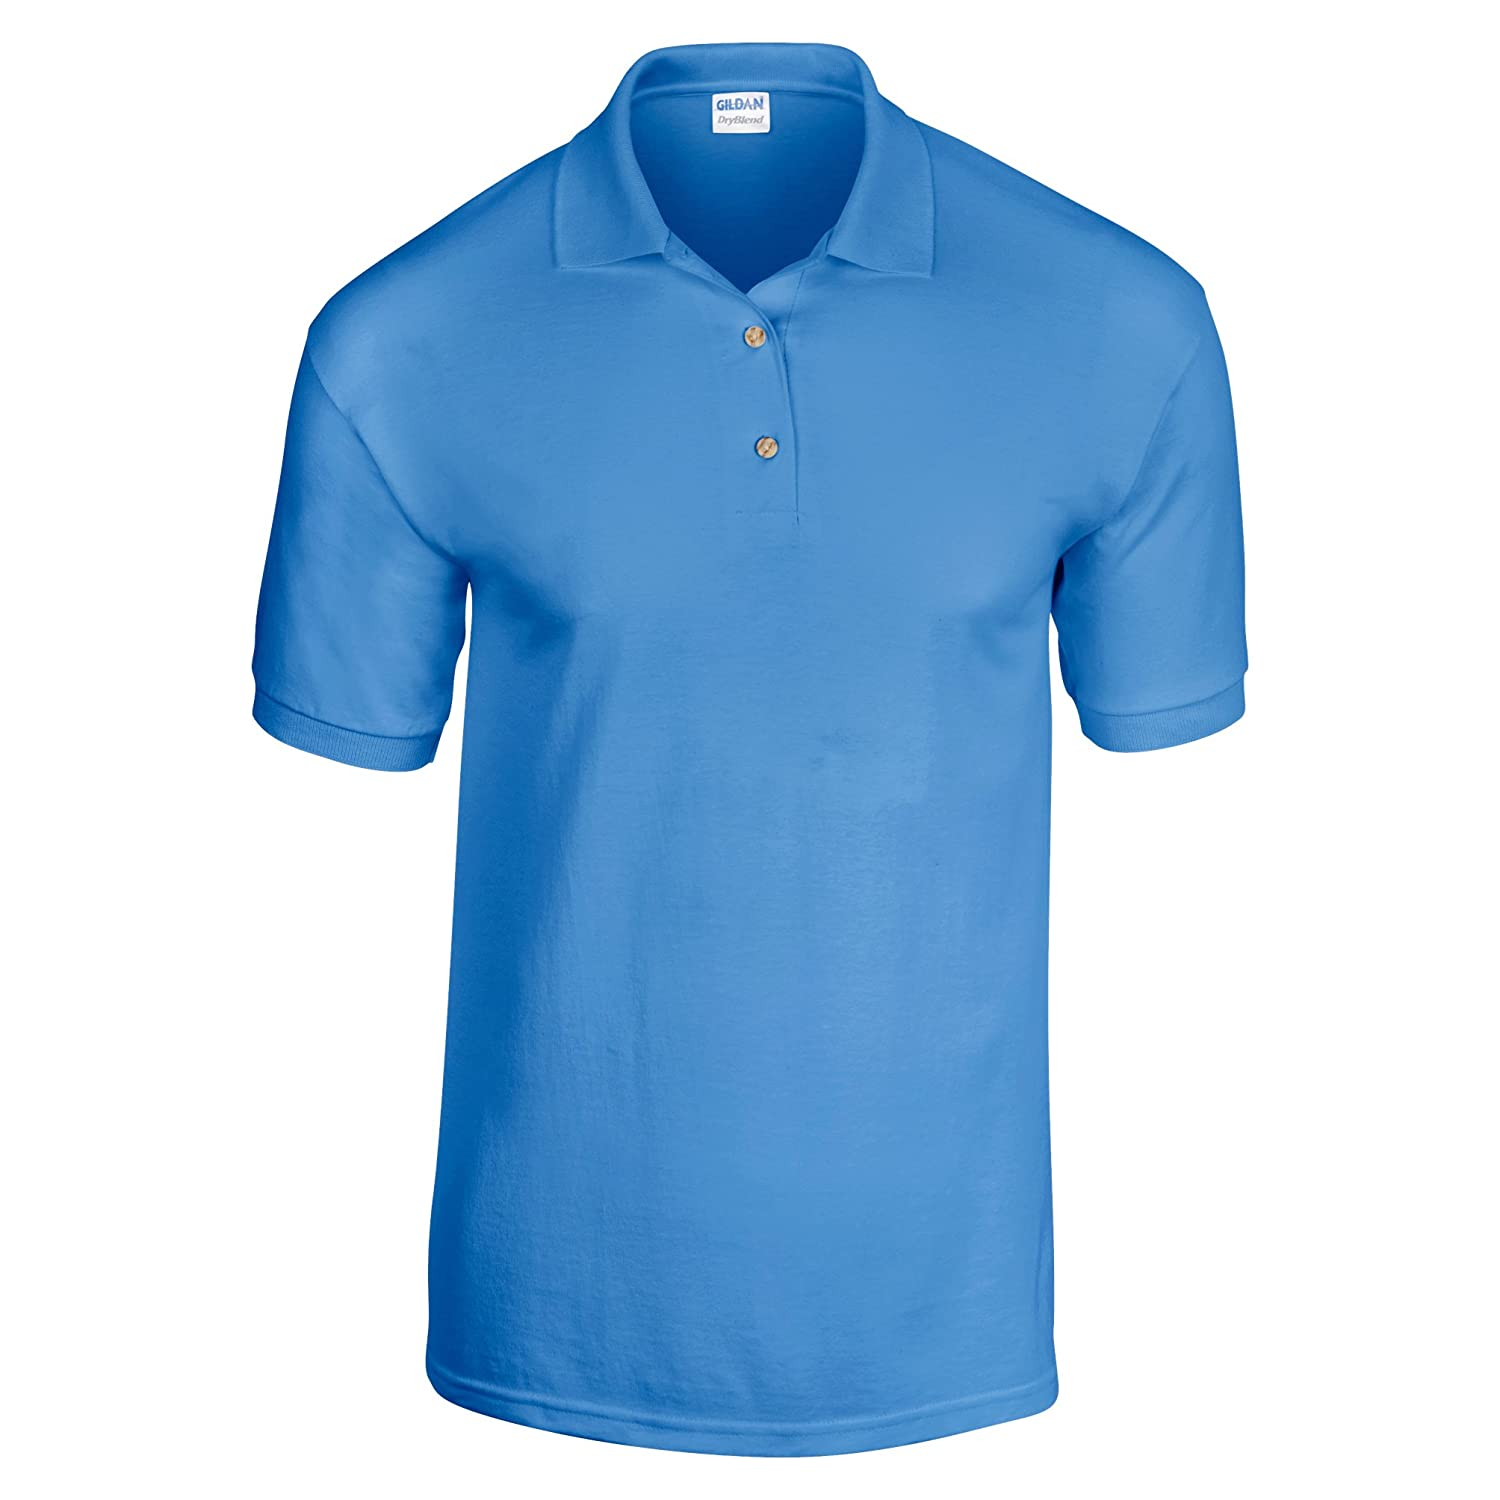 8f68abd8a Gildan Adult DryBlend Jersey Short Sleeve Polo Shirt at Amazon Men's  Clothing store: Purple Shirt